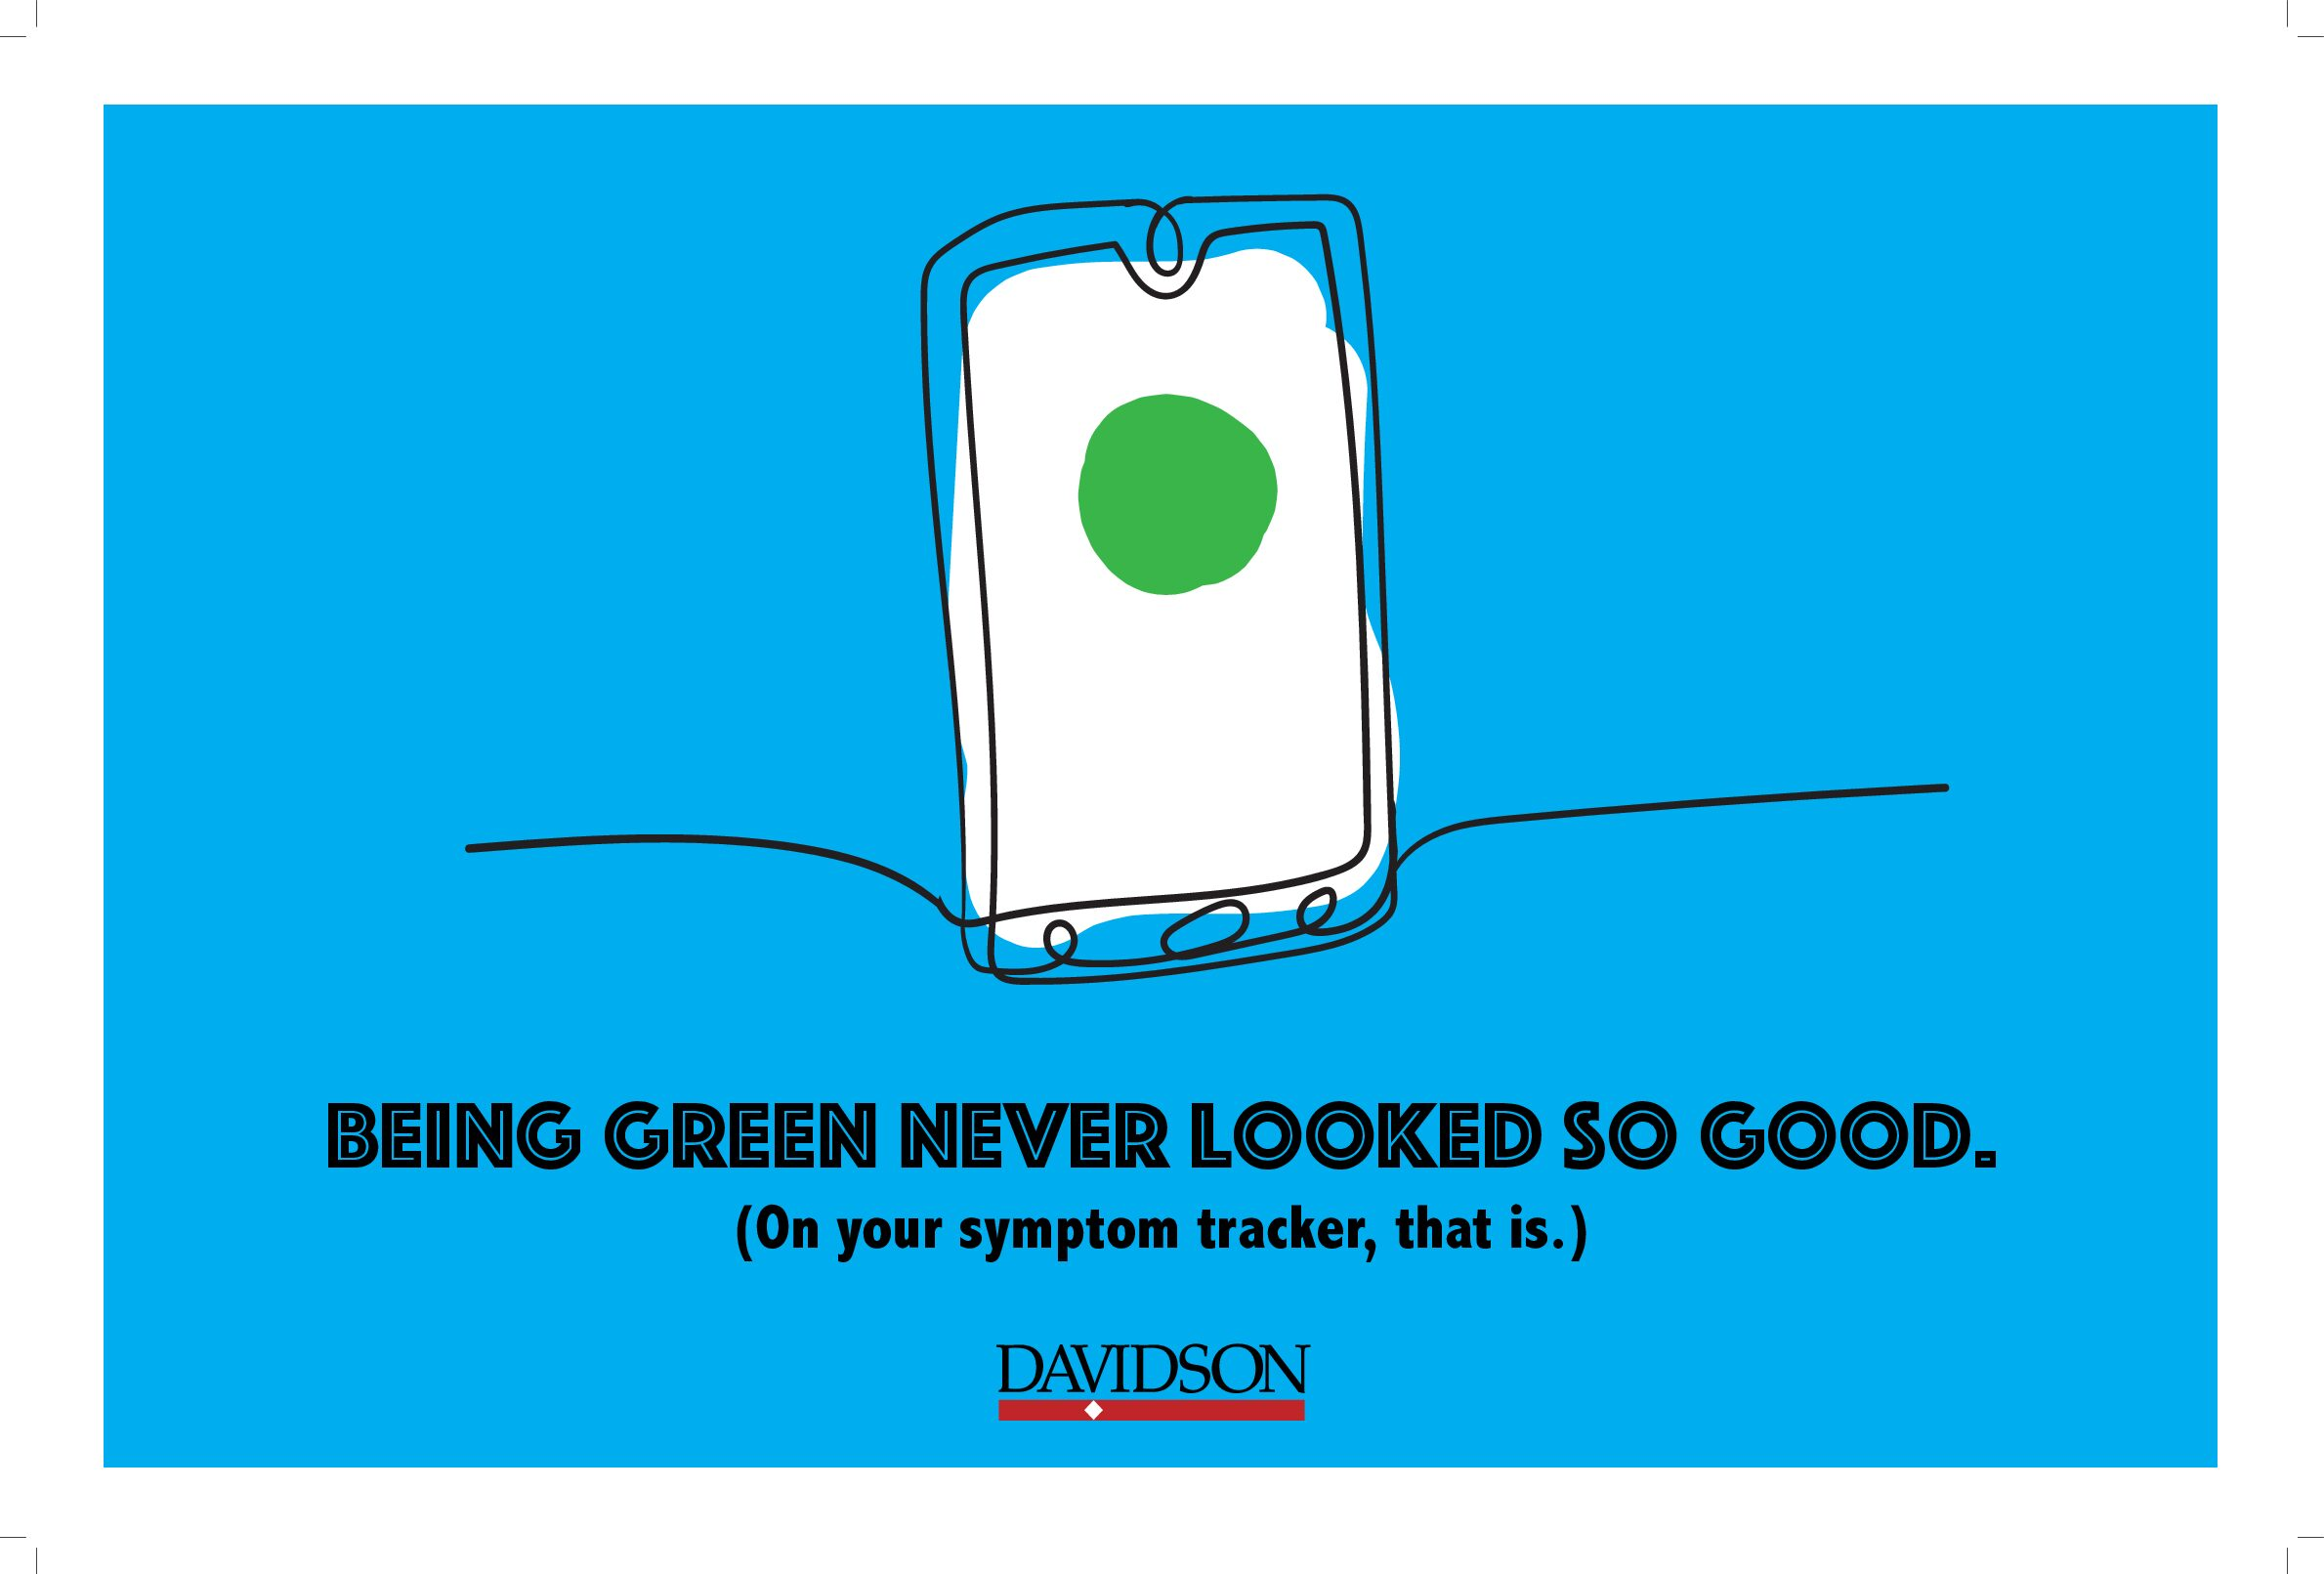 Being green never looked so good. On your symptom tracker, that is.